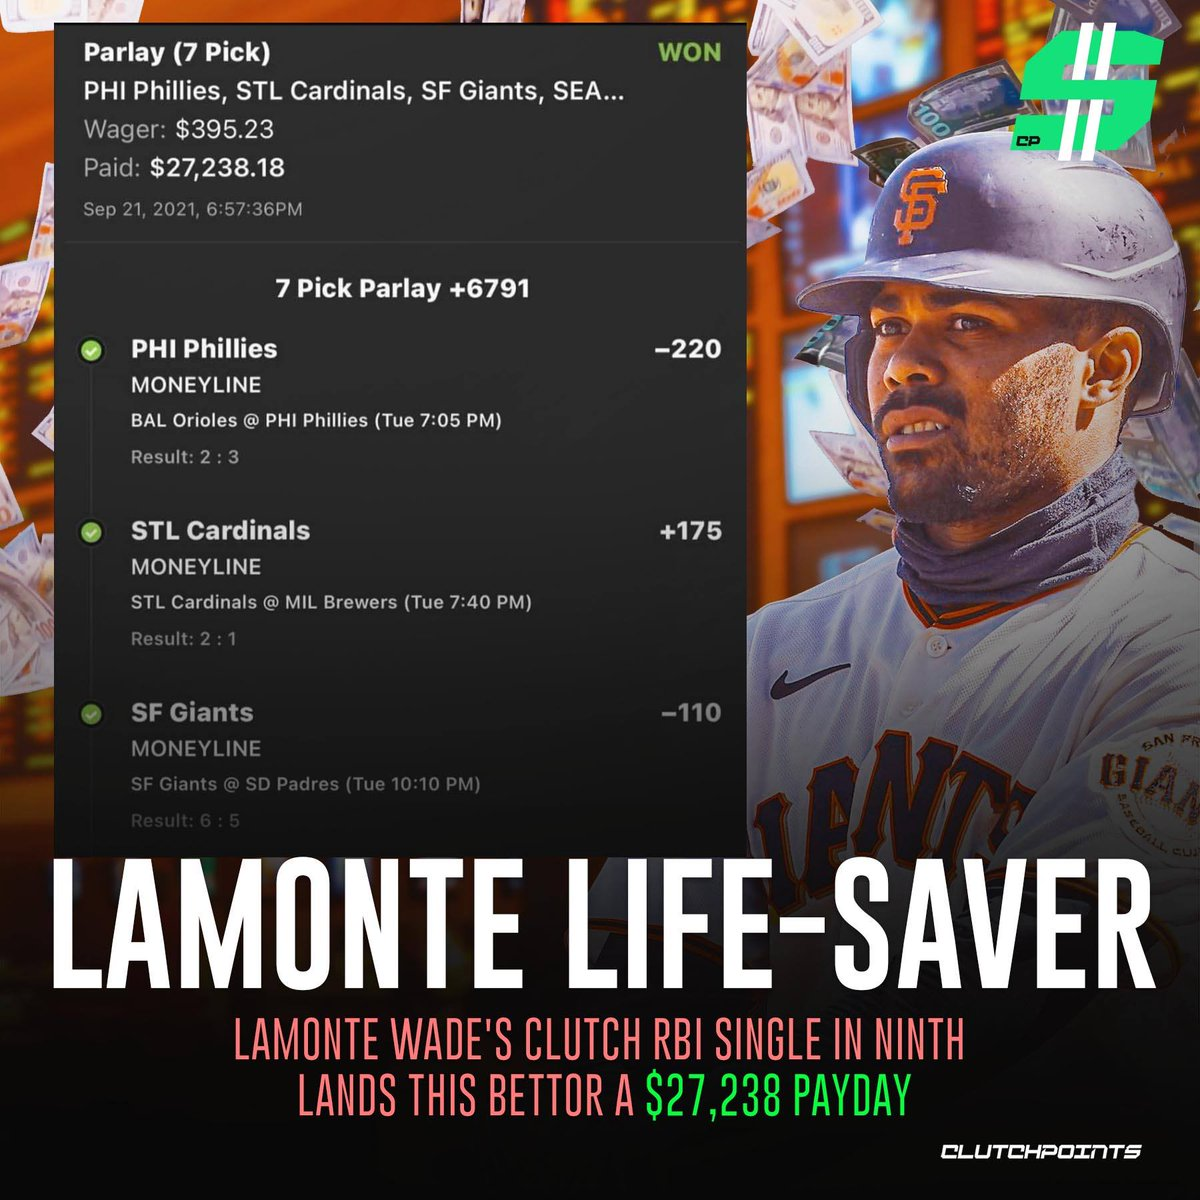 LaMonte Wade has come through clutch for Giants bettors all year, but this hit might be the most memorable for it's playoff implications and five figure bonus 🤑